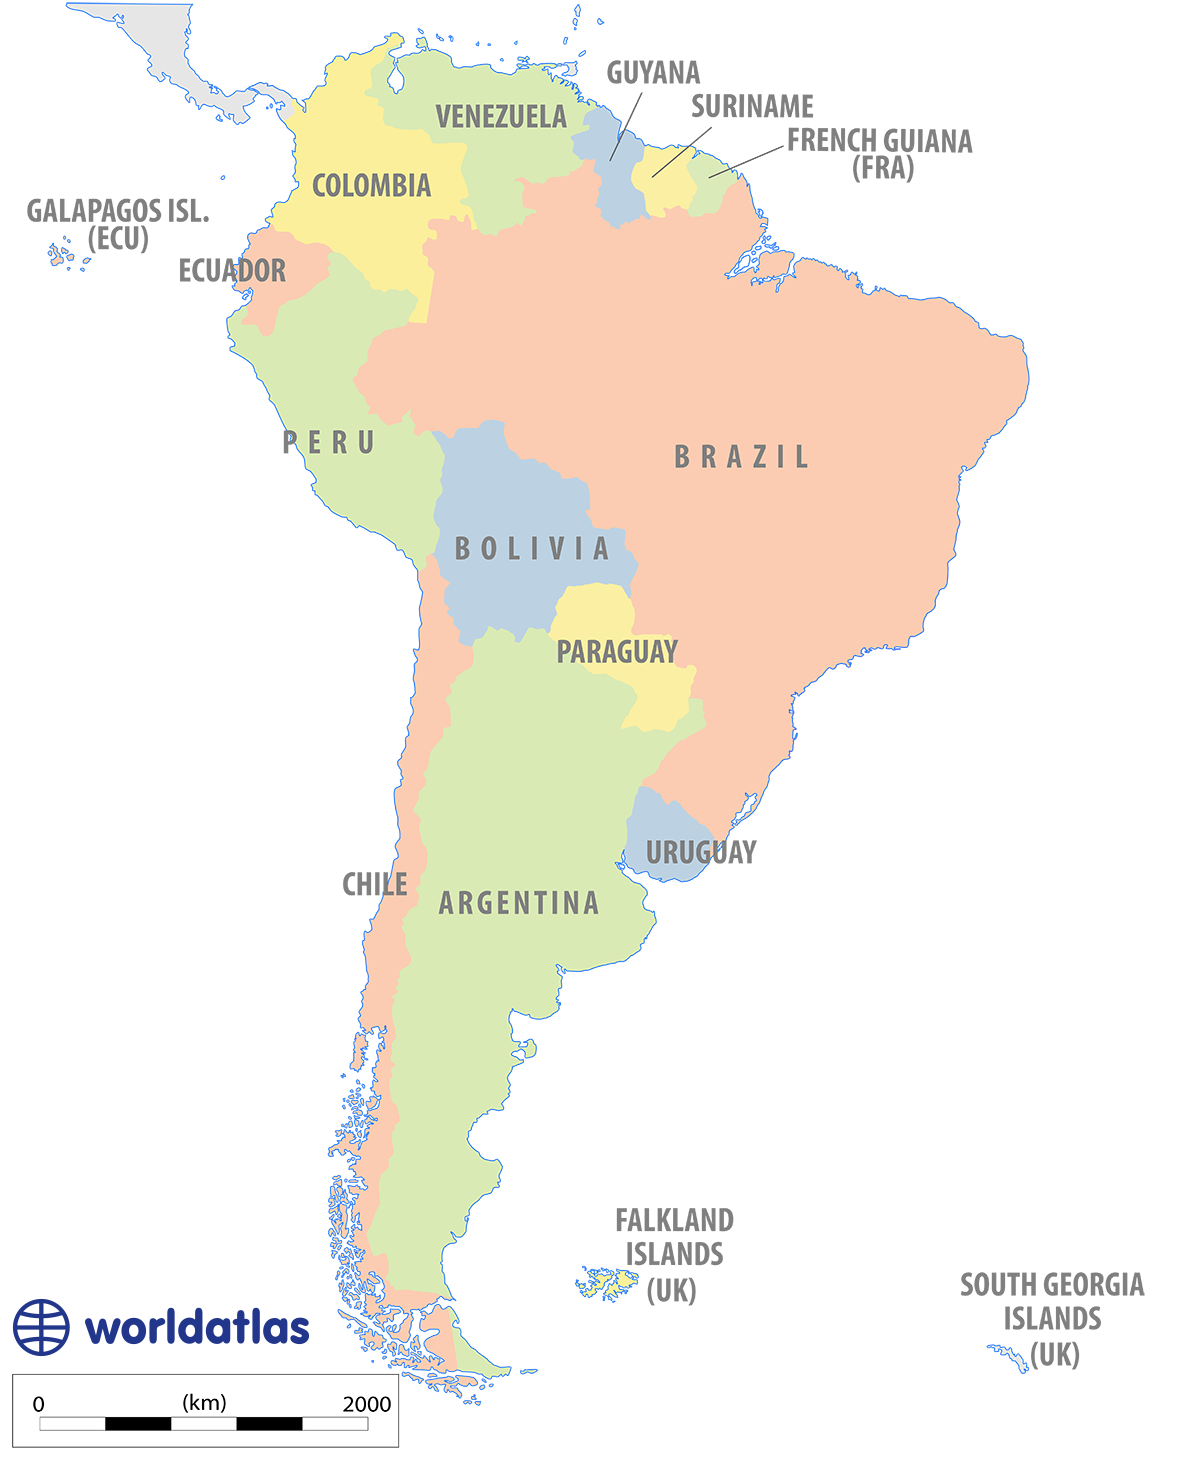 Maps of South America Images Of Peru South America Map on map of mexico, maps in south america, colombia map in america, map of africa, costa rica, map of patagonia south america, map of amazon basin south america, puerto rico, map of south america with argentina, machu picchu, map of the galapagos islands south america, lima south america, top 10 poorest cities in america, machu picchu peru south america, close up map of south america, peru in south america, nicaragua on map of south america, map of santiago south america, map of atacama desert south america, information on peru south america, map of aruba and south america, map of trinidad and tobago south america, political map of south america,